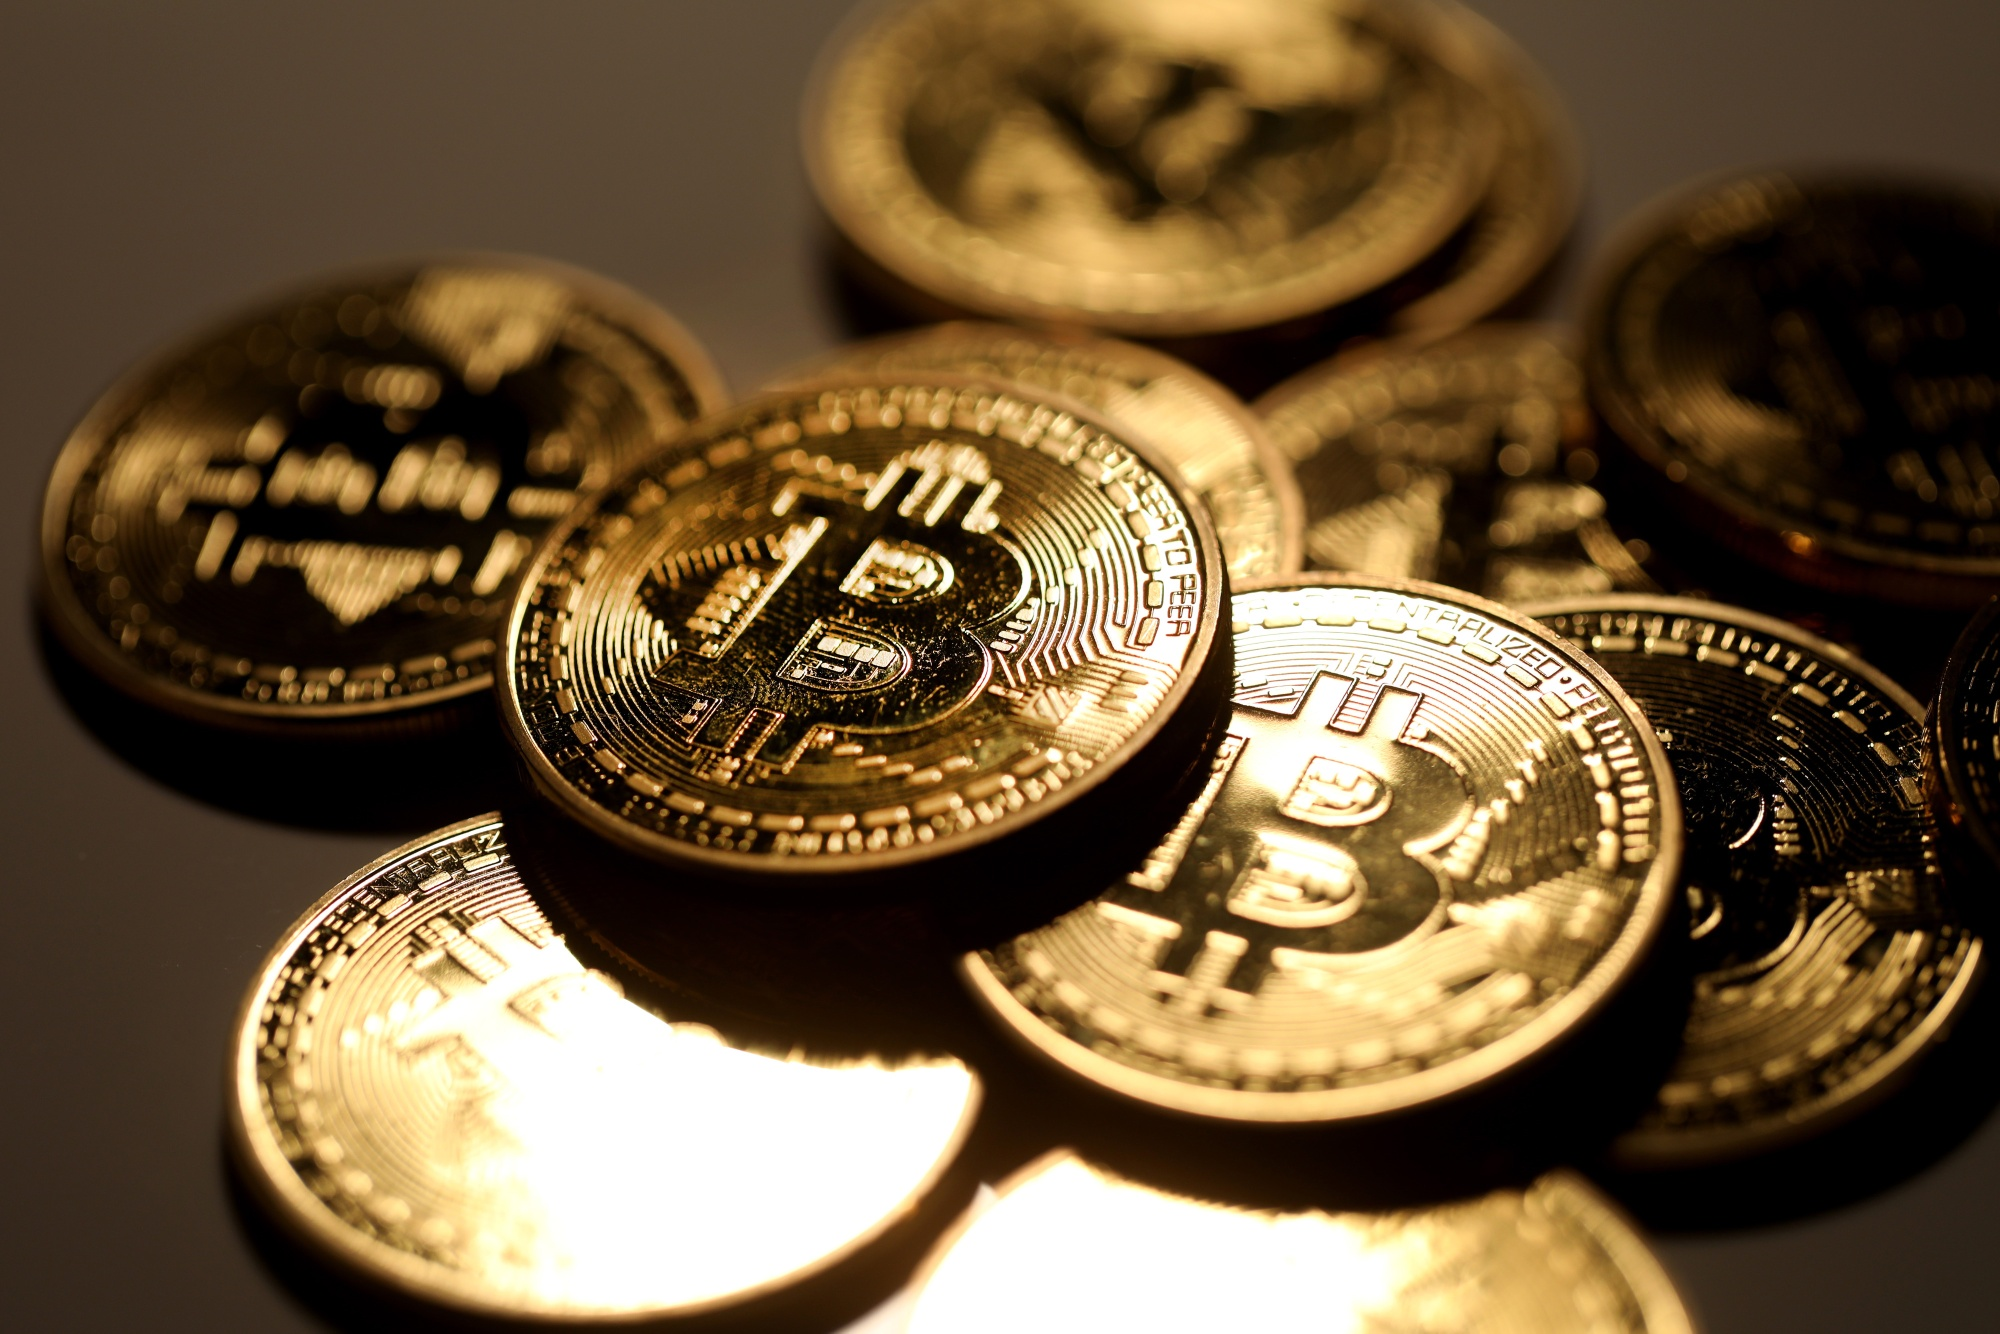 Push tx bitcoins point differential nfl betting lines